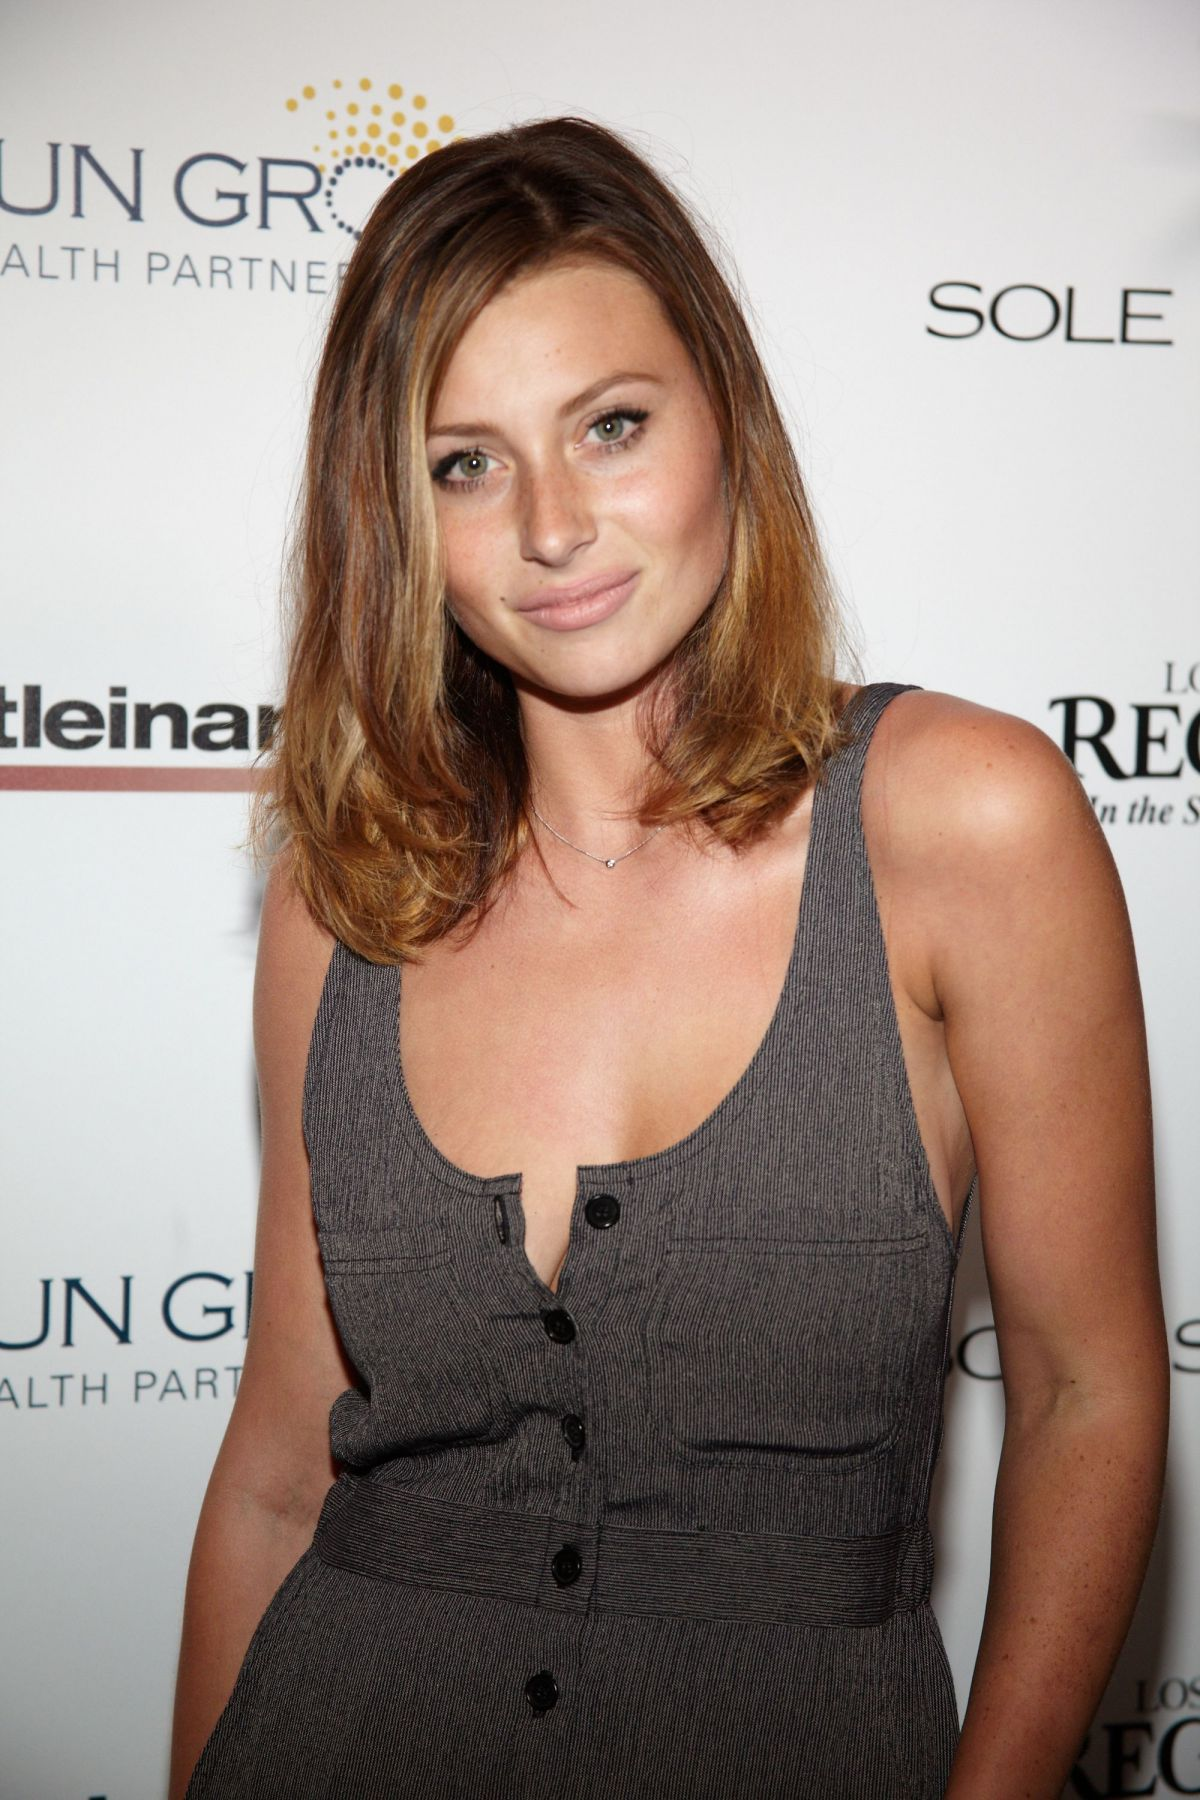 ALY MICHALKA at Matt Leinart Foundation Celebrity Bowl in Hollywood